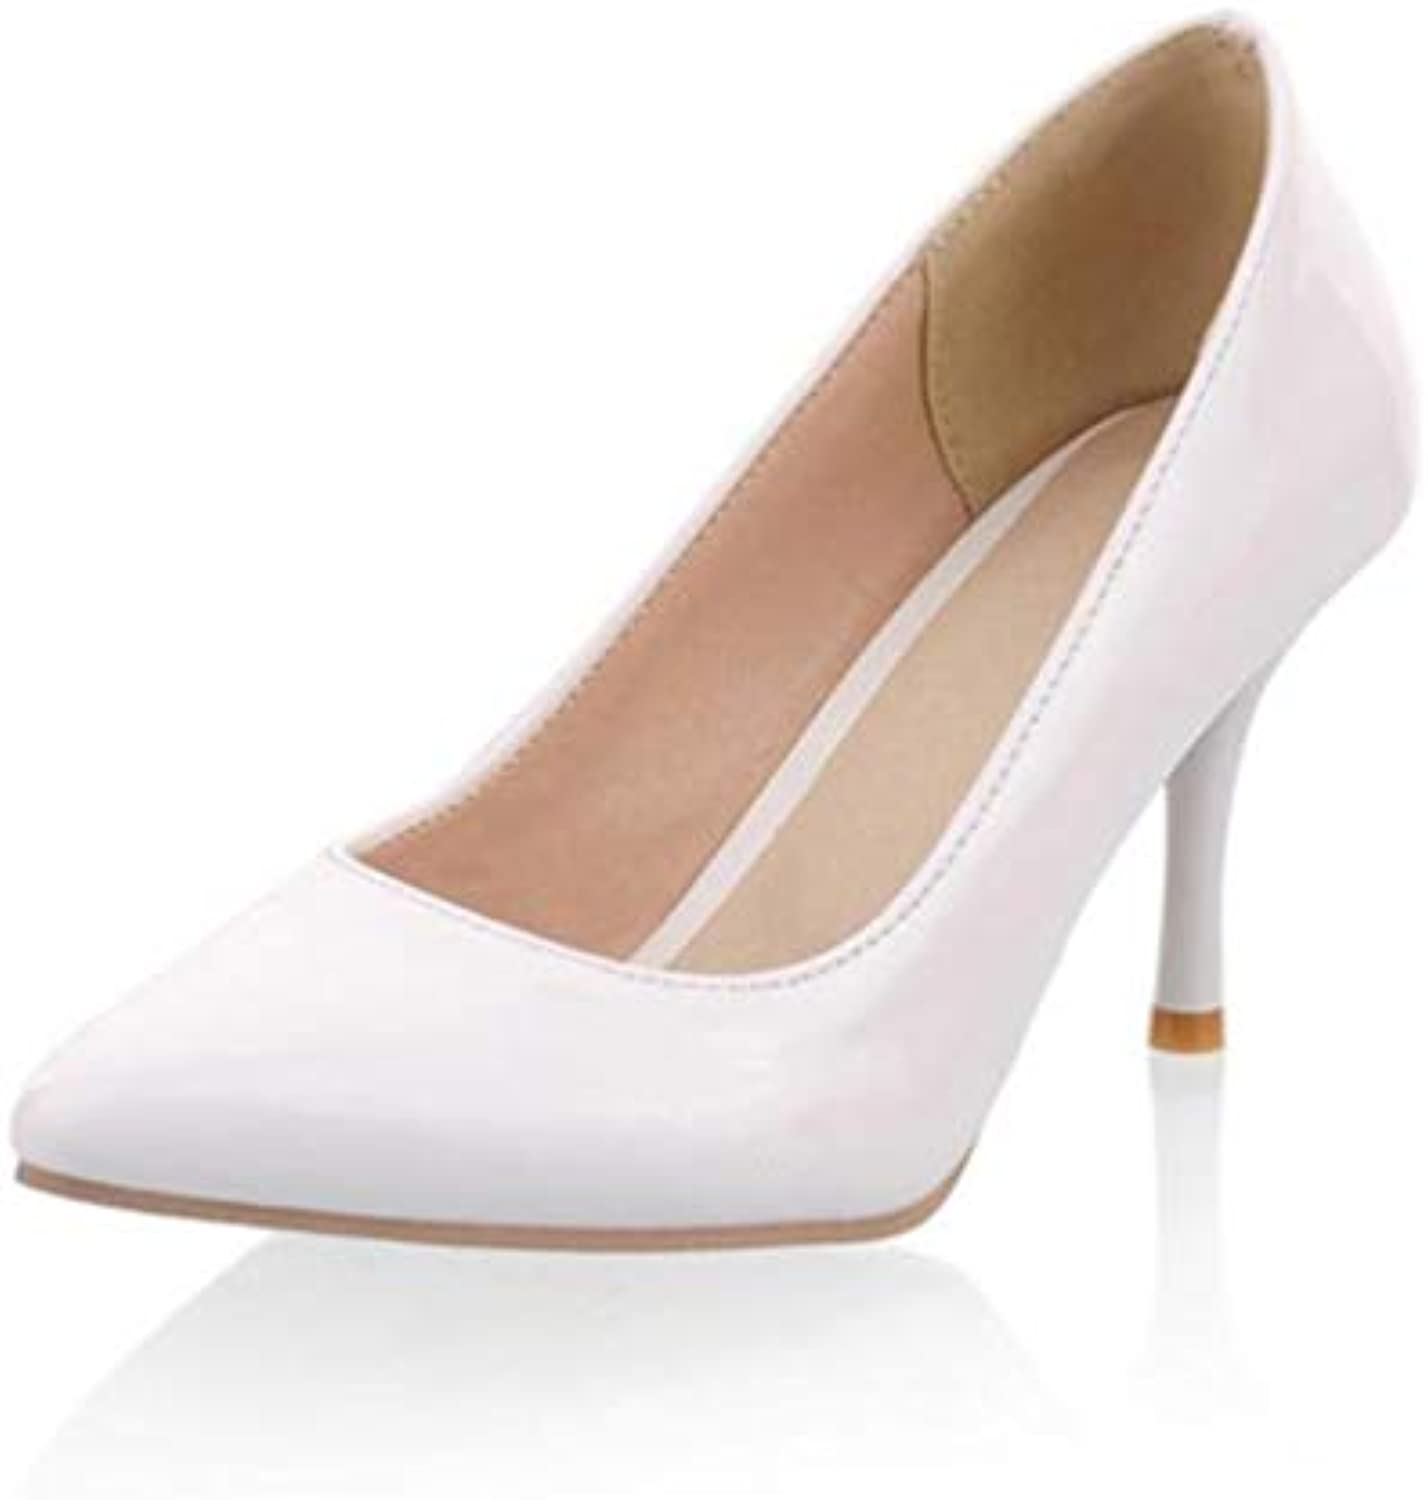 a264826b6d JRenok Women high Heels Office Ladies Shoes Shoes Shoes Shallow Party Sexy  Pumps Fashion Footwear Heels Wedding Stilettos B07HF33TNY Parent 51a299